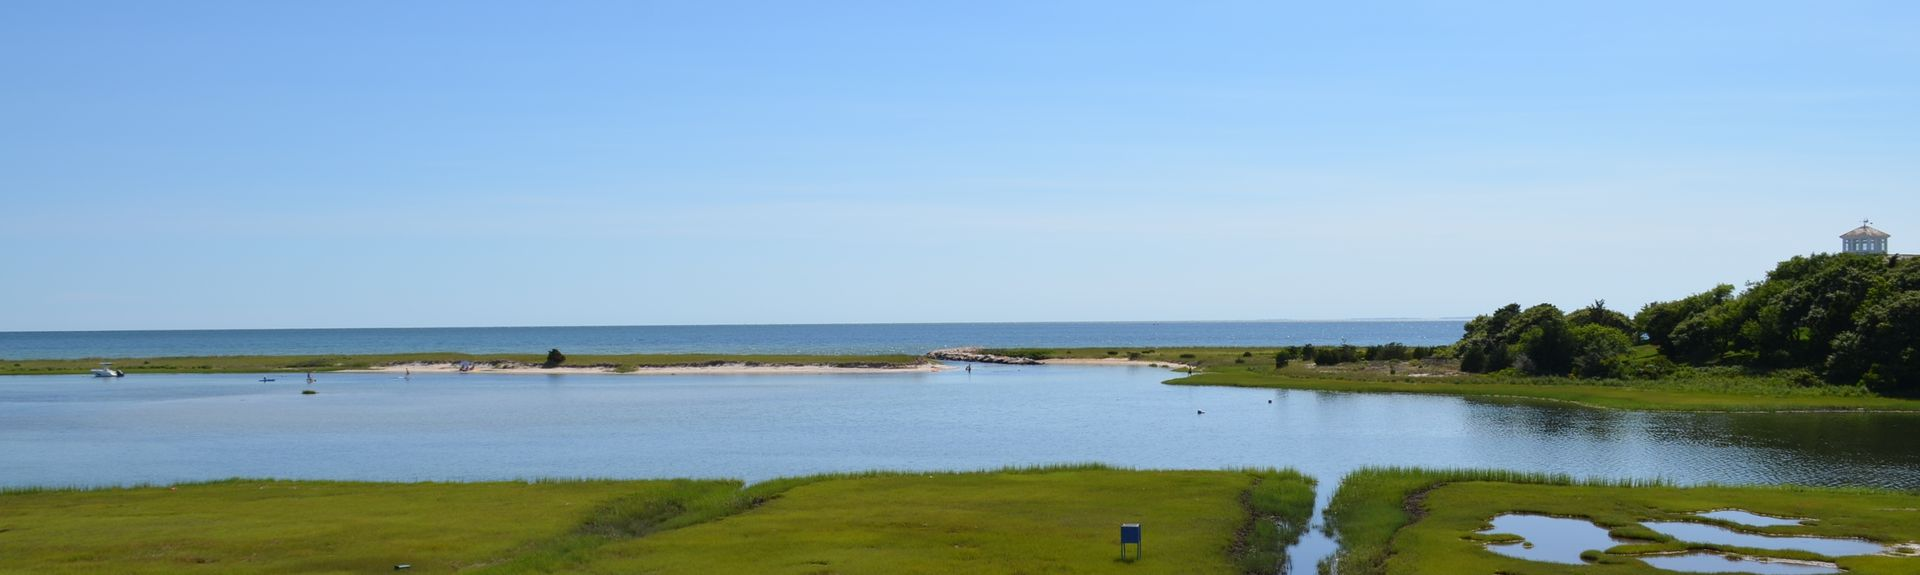 West Hyannisport, Barnstable, MA, USA